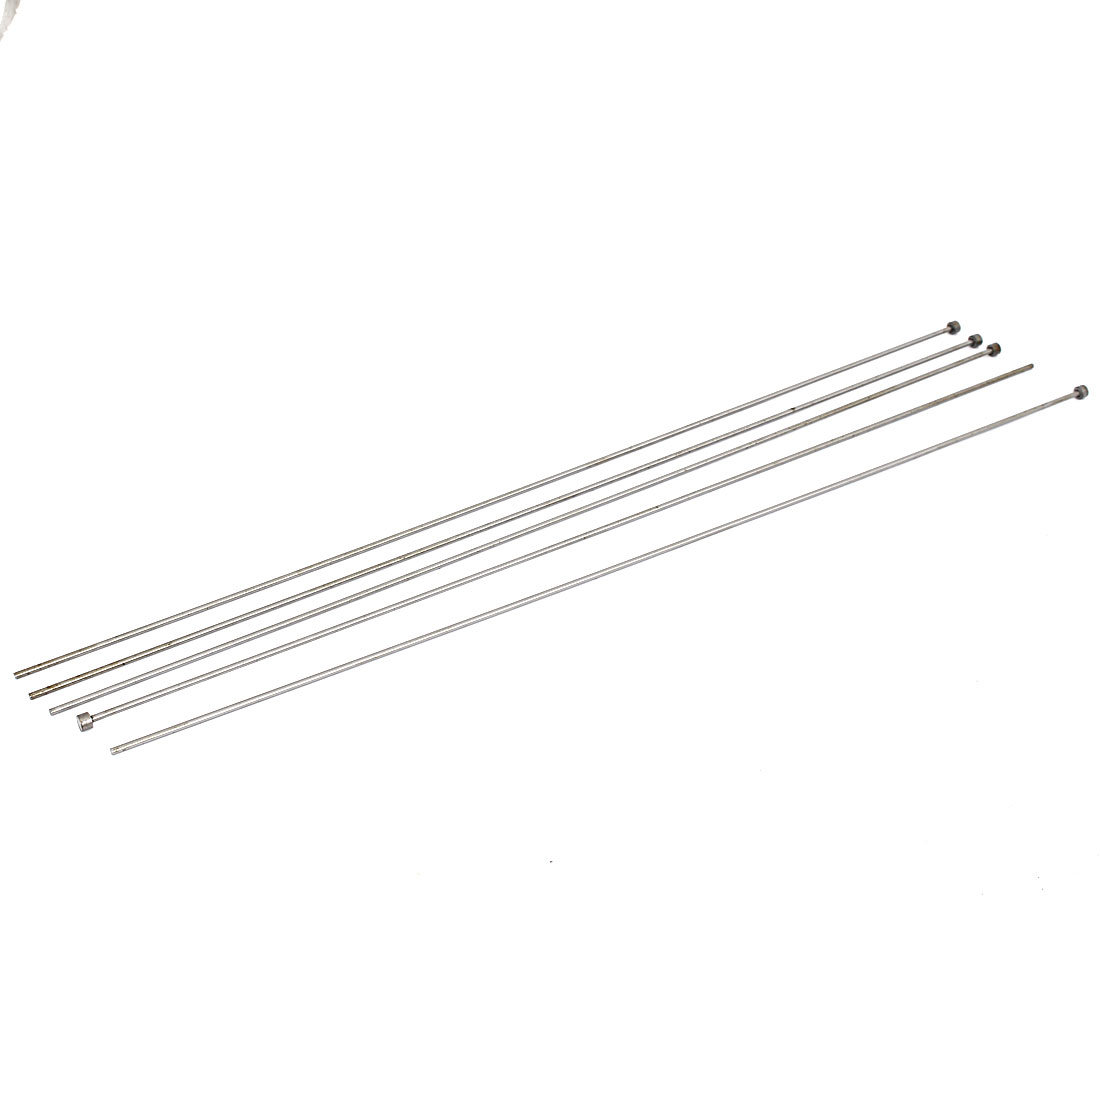 2.5mm Tip Straight Injection Mould Ejector Pin Thimble Punching 450mm Long 5pcs